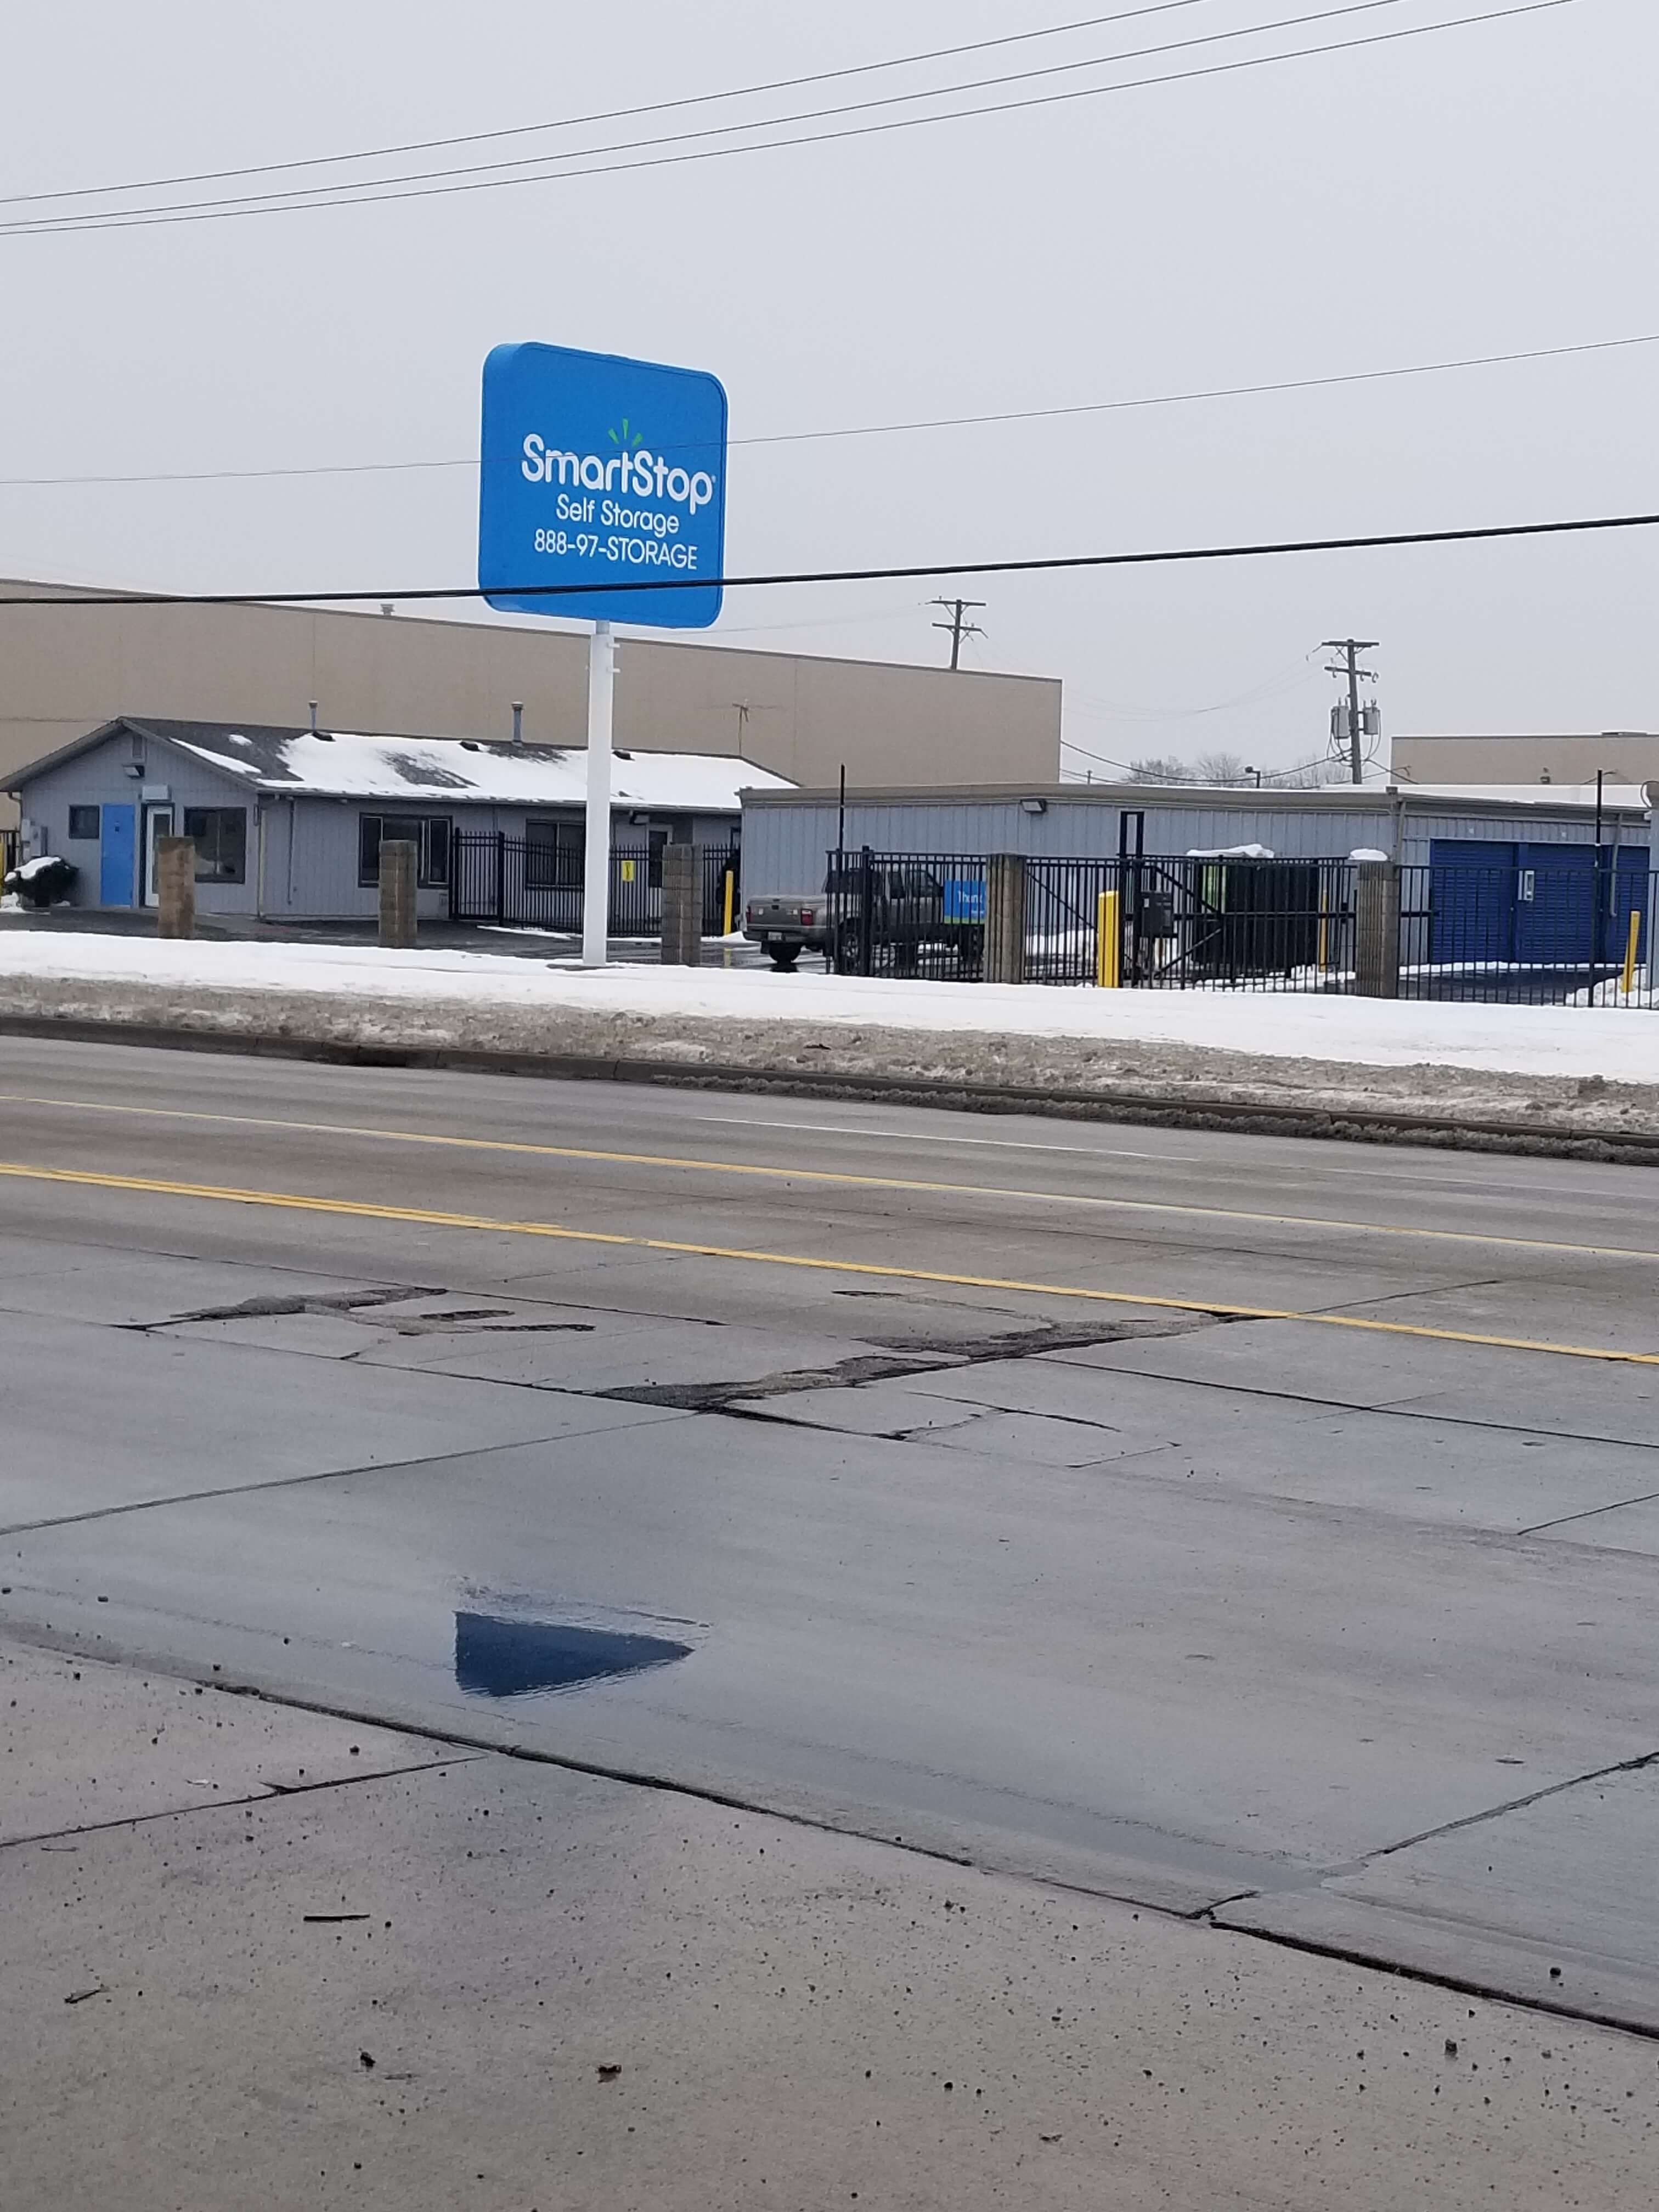 Street entrance view of Smart Stop self storage facility located at 24623 Ryan Road, Warren Michigan